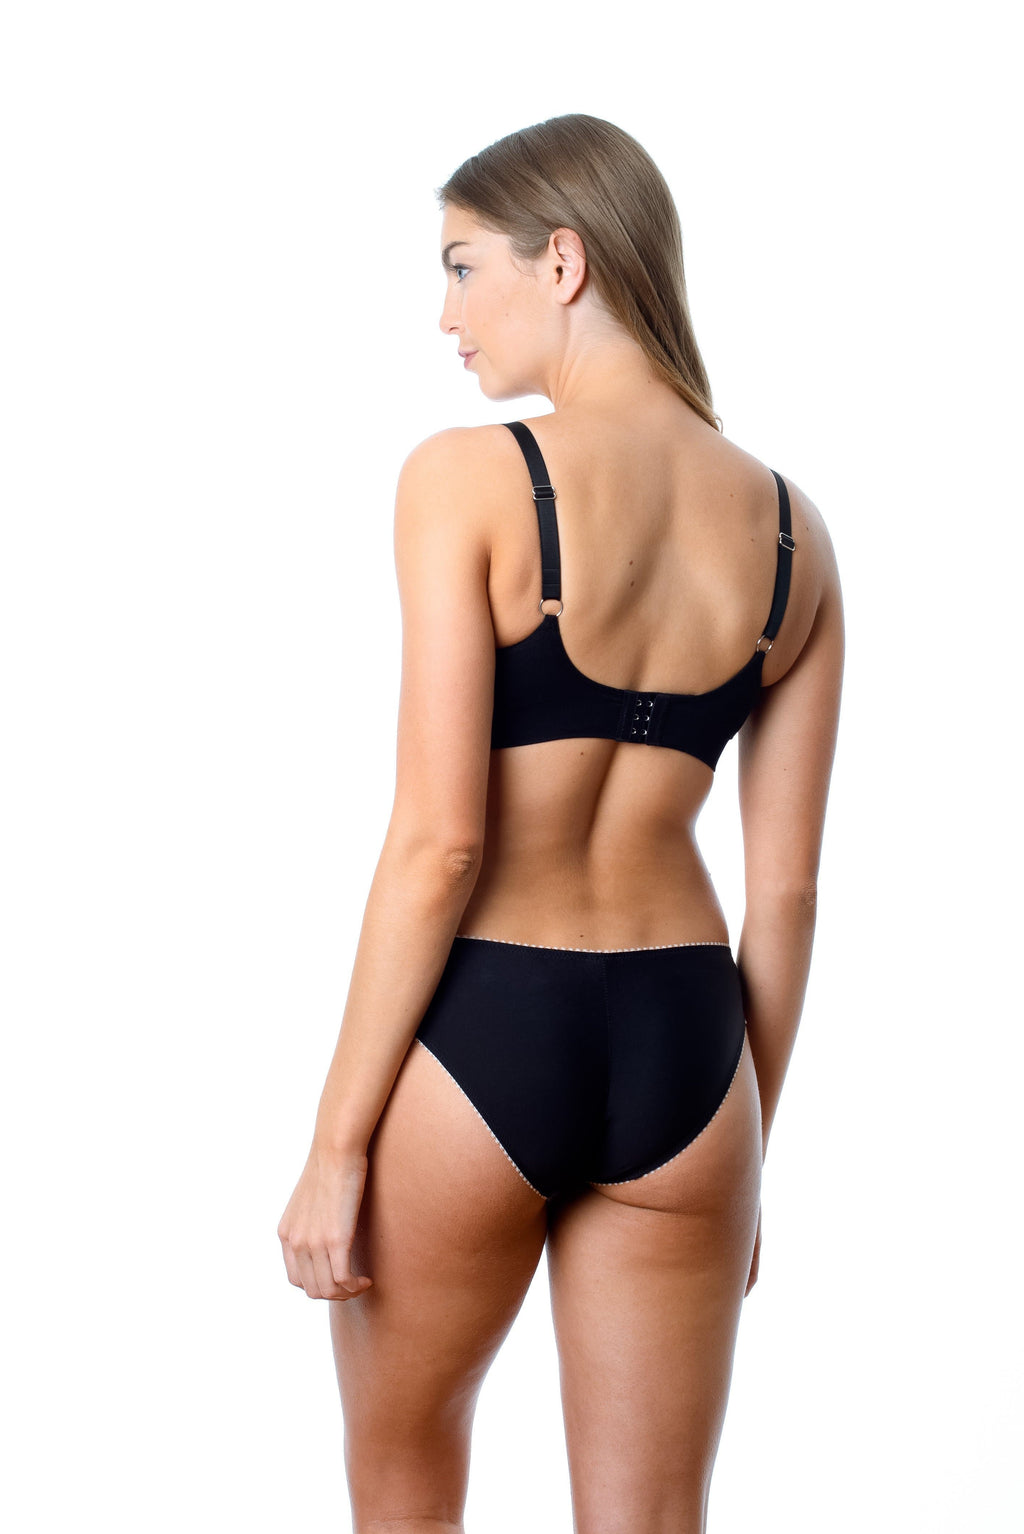 MY COMFORT BRA JET BLACK - WIREFREE